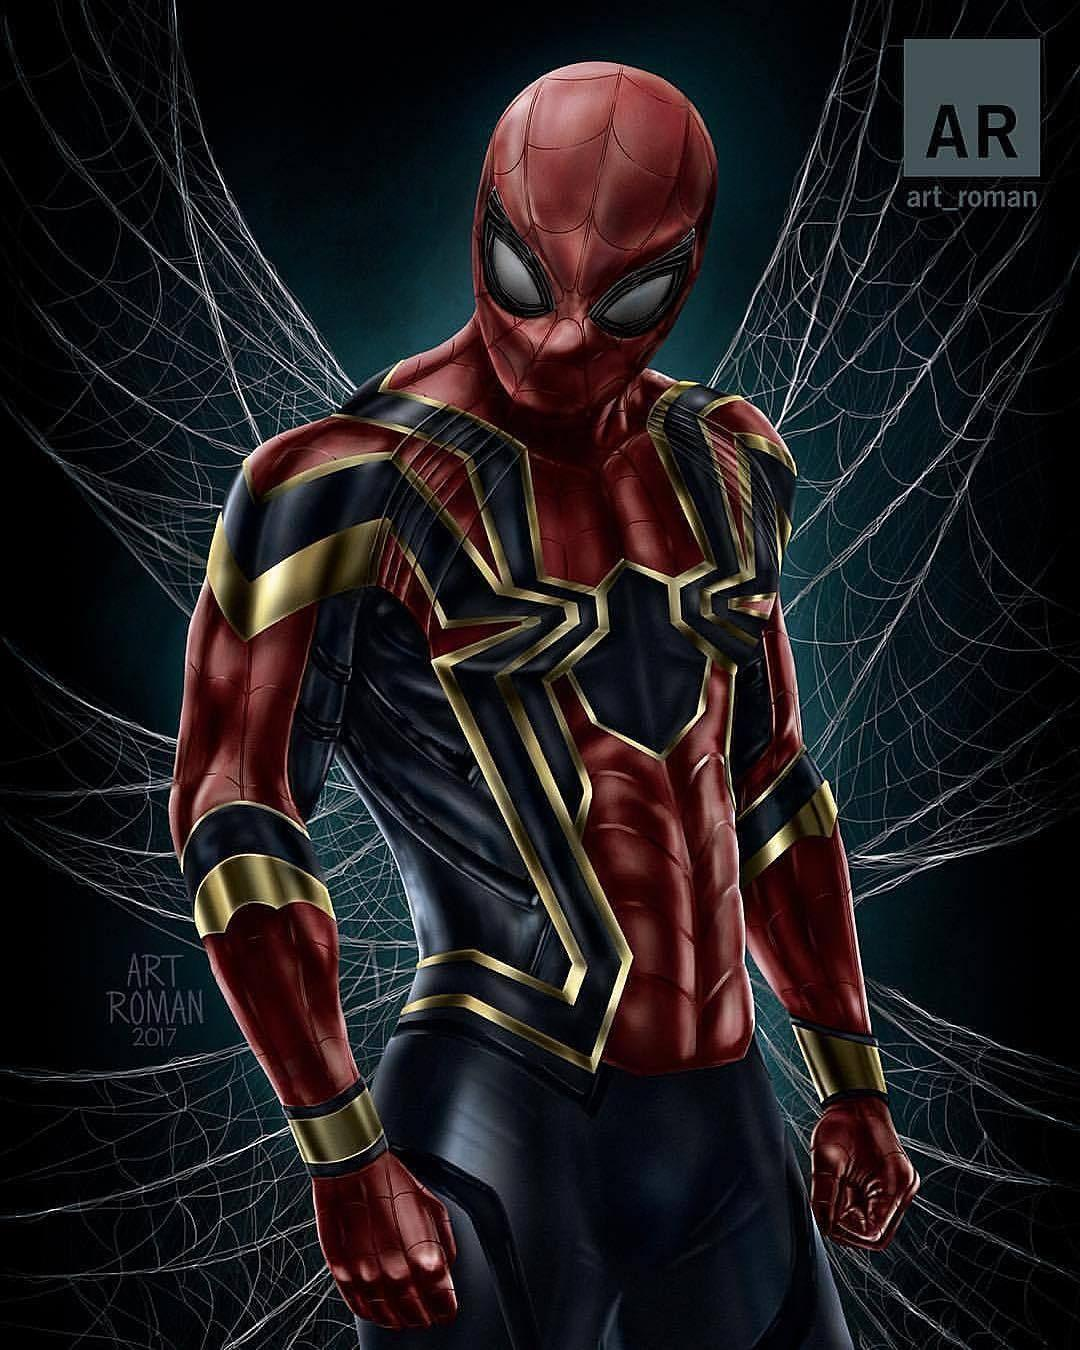 Iron spider suit wallpapers wallpaper cave - Iron man spiderman wallpaper ...